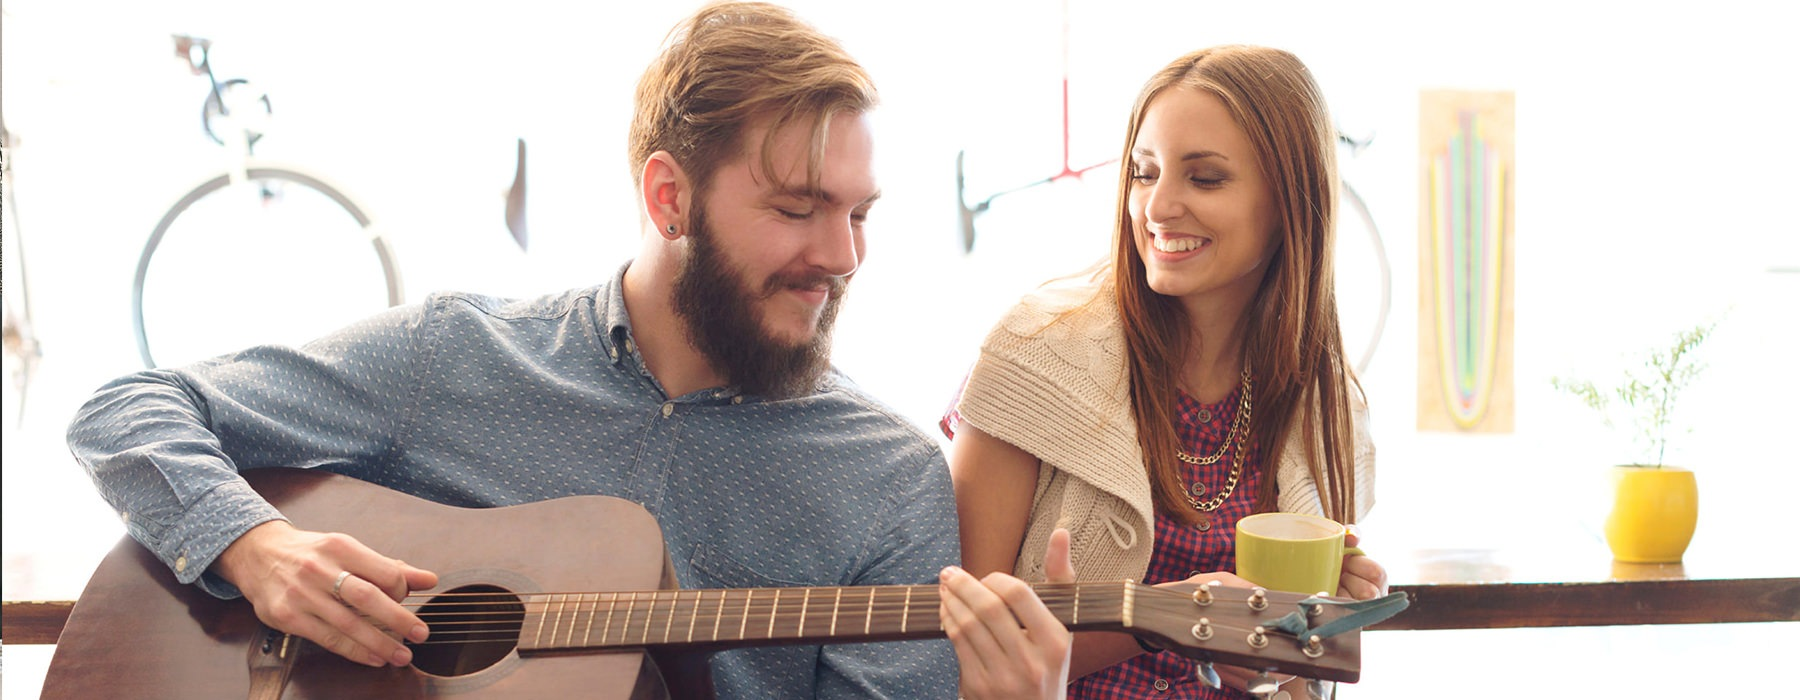 Couple hanging out while the man plays guitar